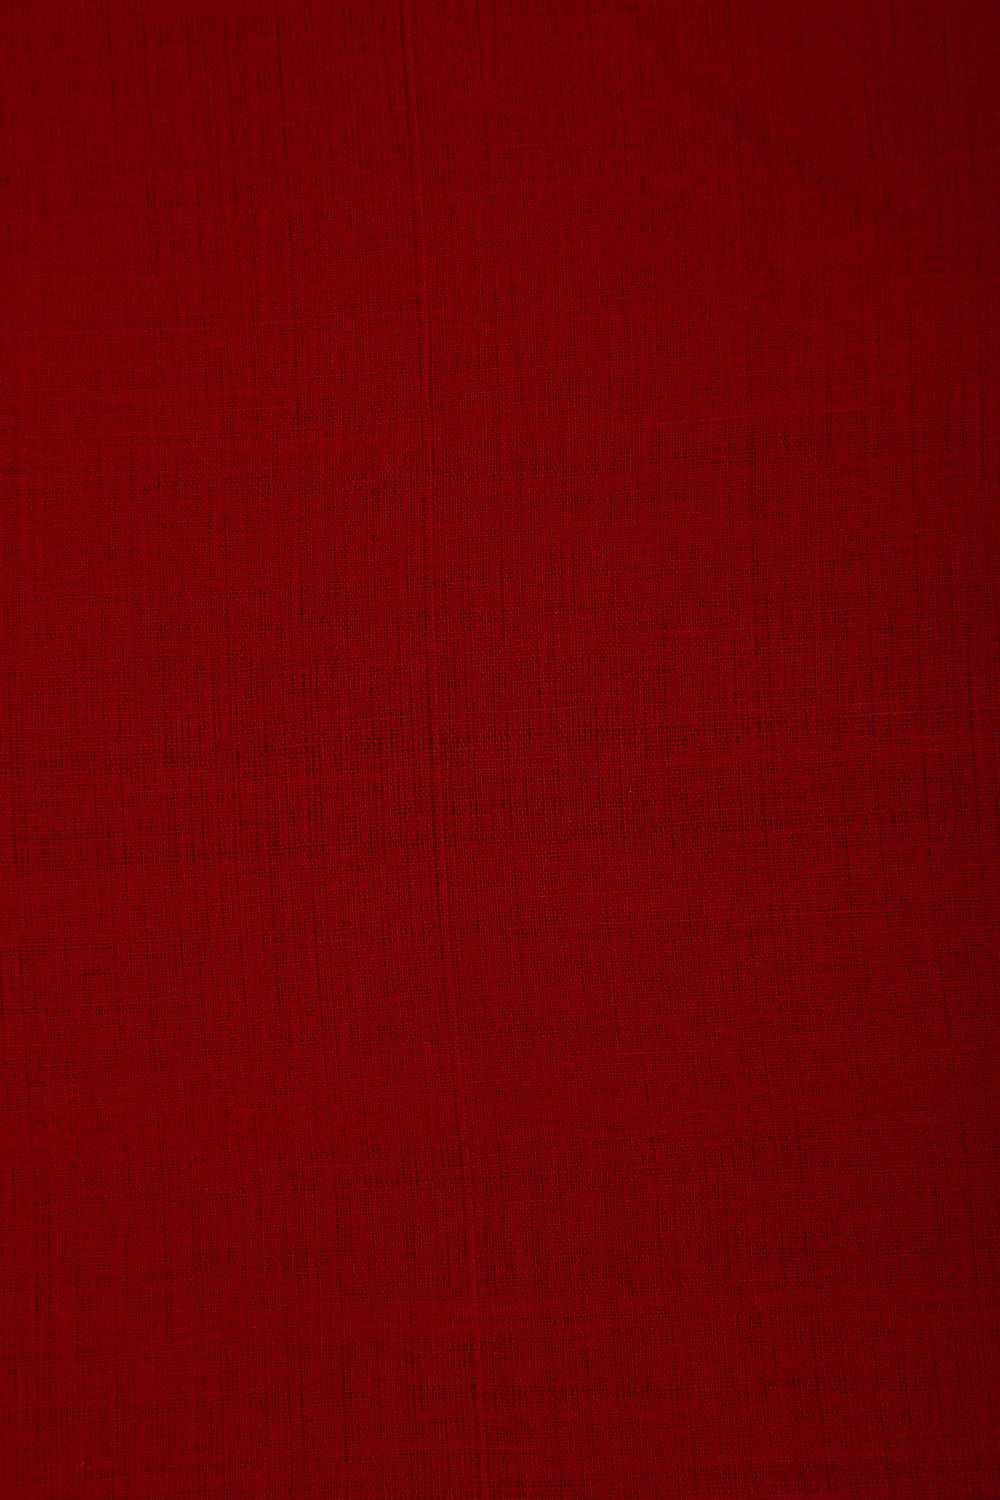 Red Handloom Mangalgiri Cotton Fabric - GleamBerry